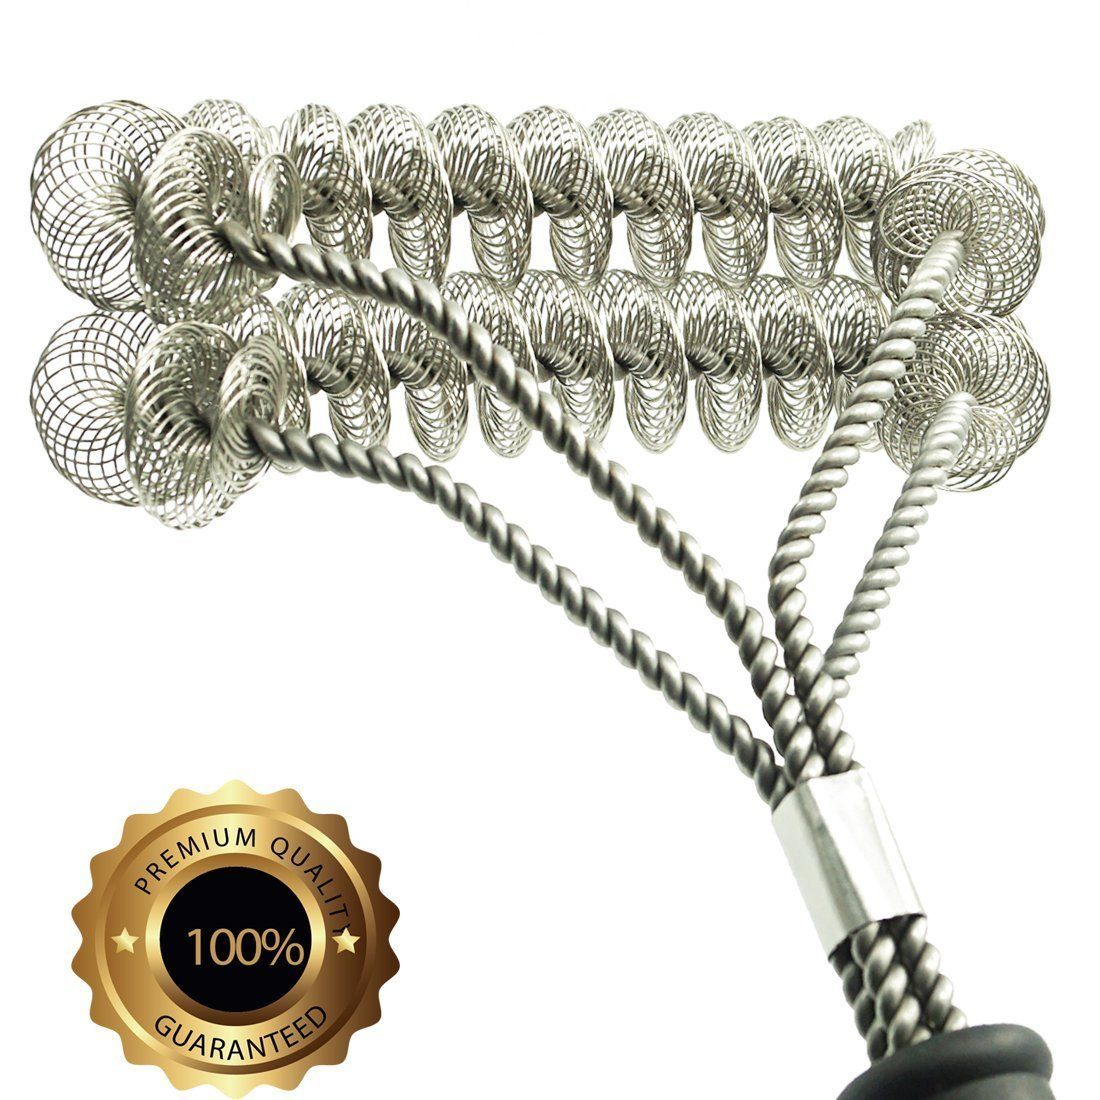 6. Top 10 Best Grill Cleaning Spray and Grill Brush